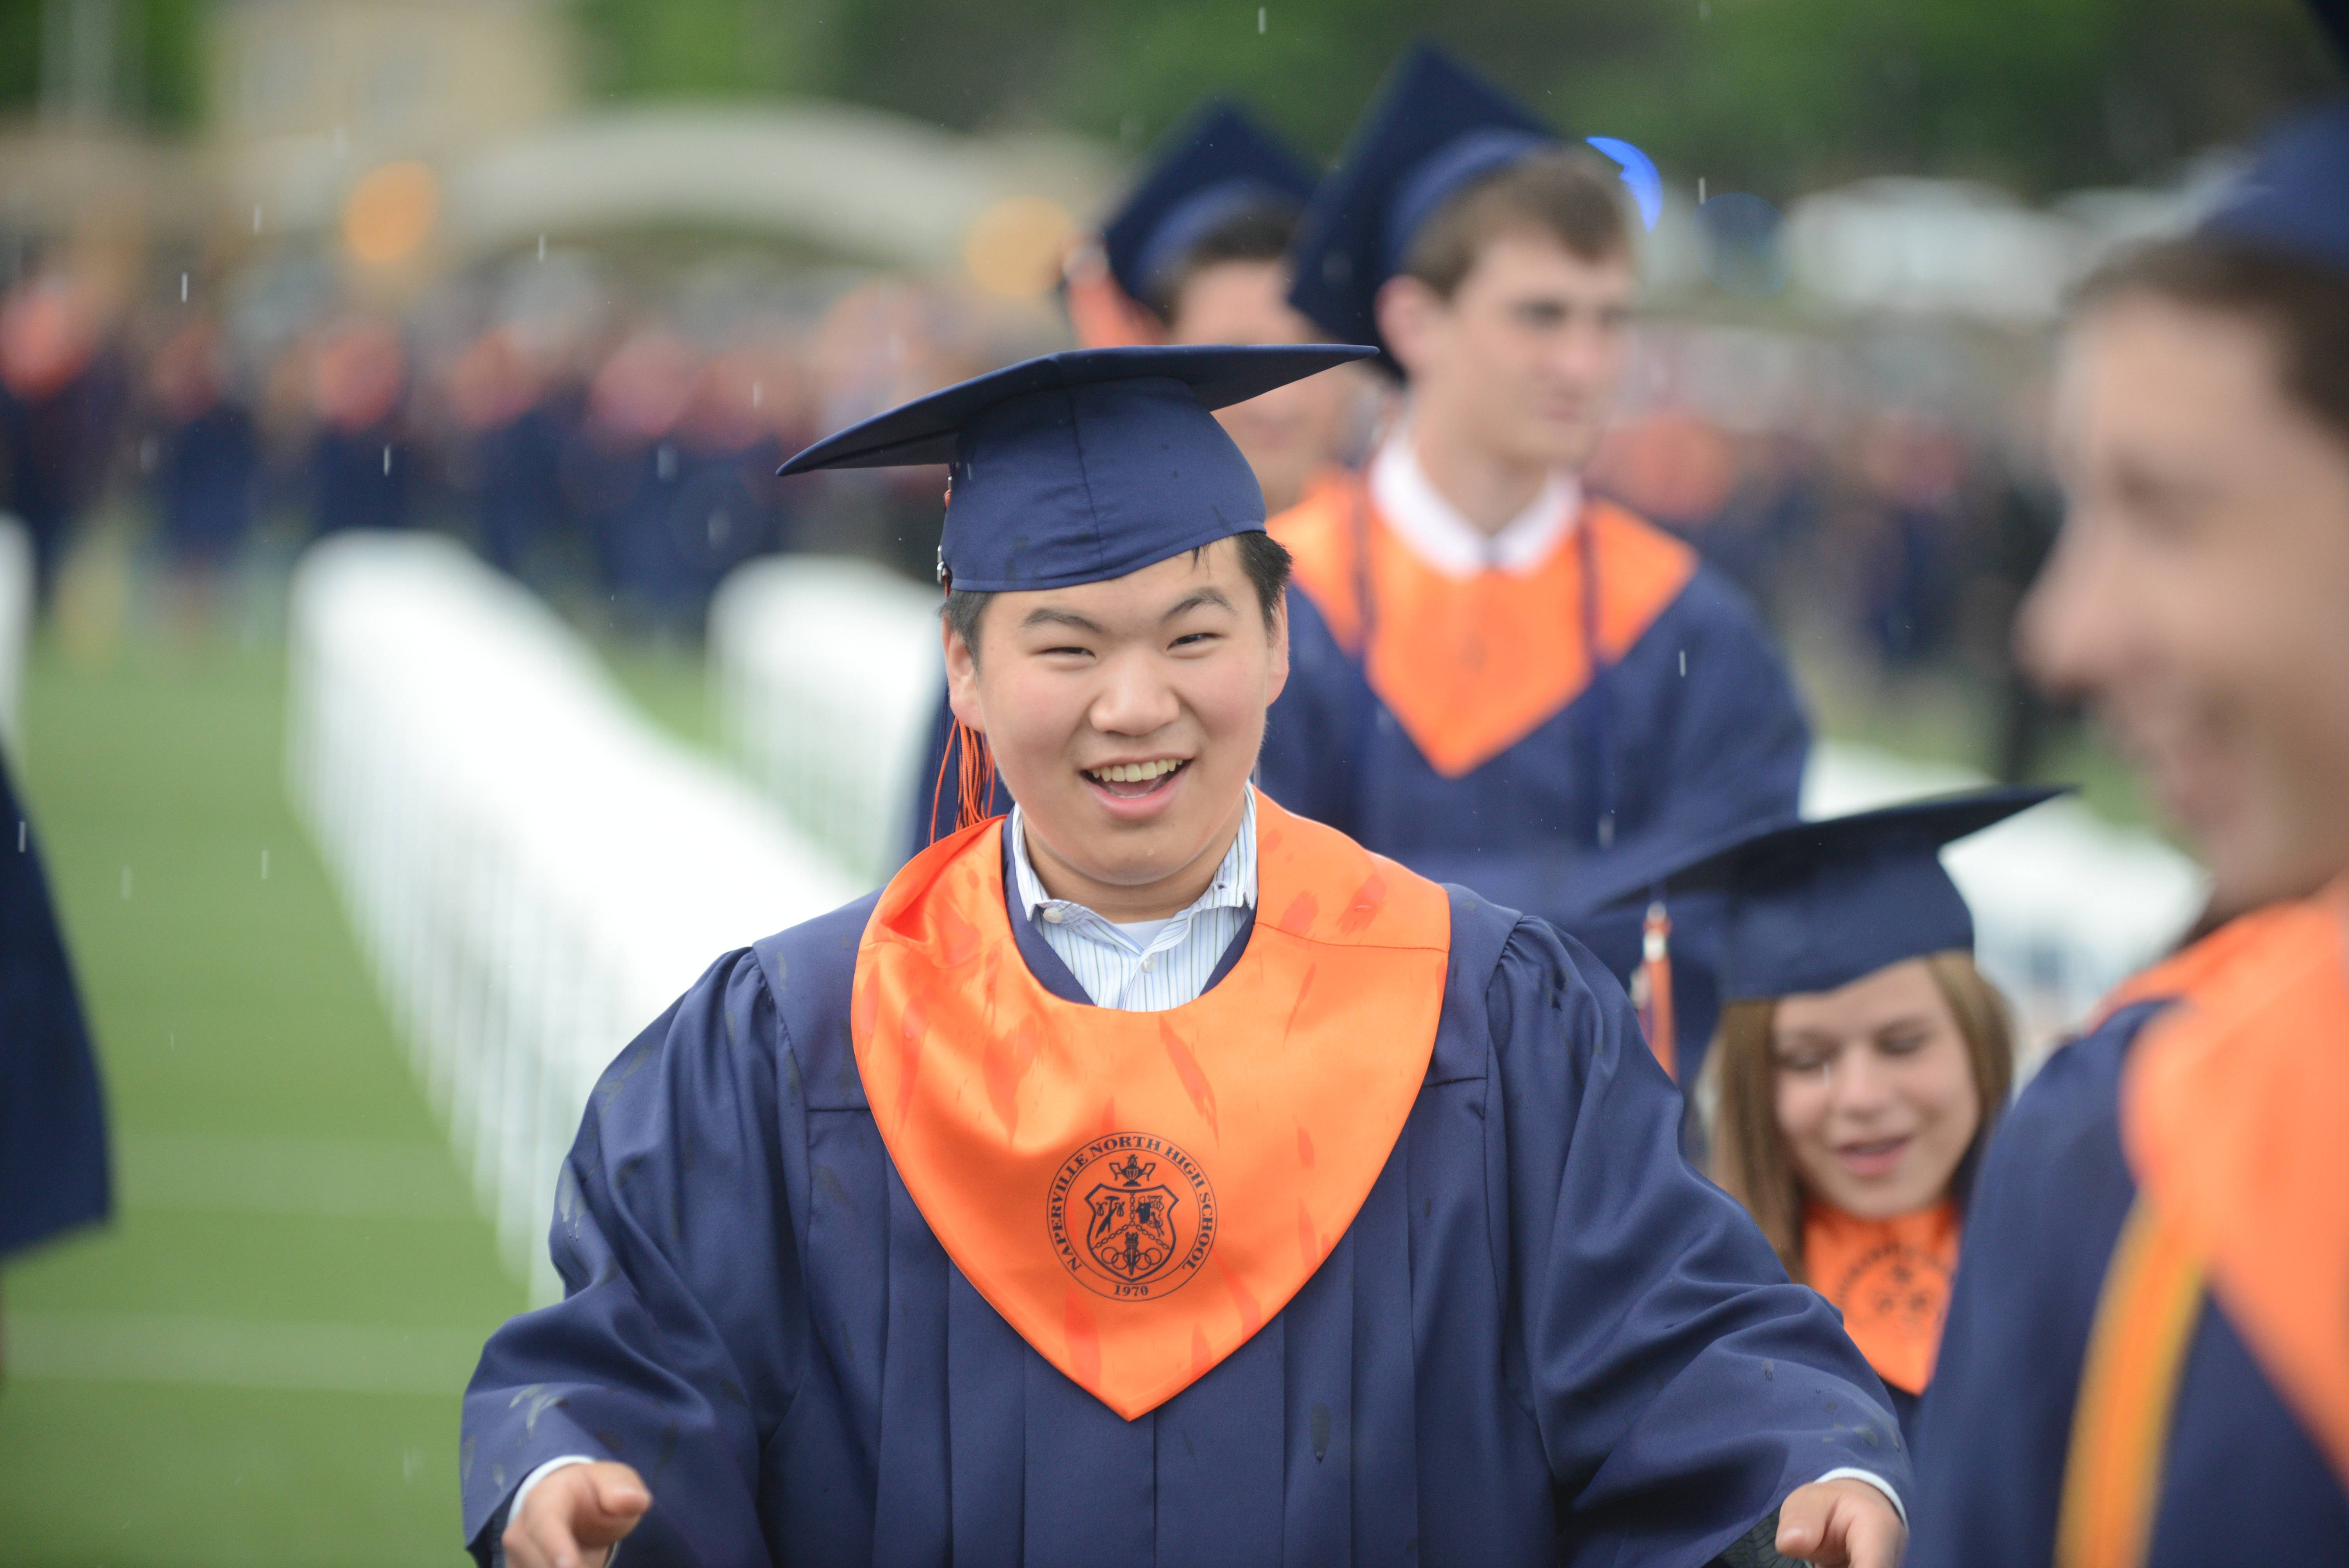 Naperville North High School started to hold its graduation Tuesday, May 27 at the school's football field, but lightning and rain intervened. The rest of the Tuesday ceremony was cancelled and moved to Wednesday, May 28.